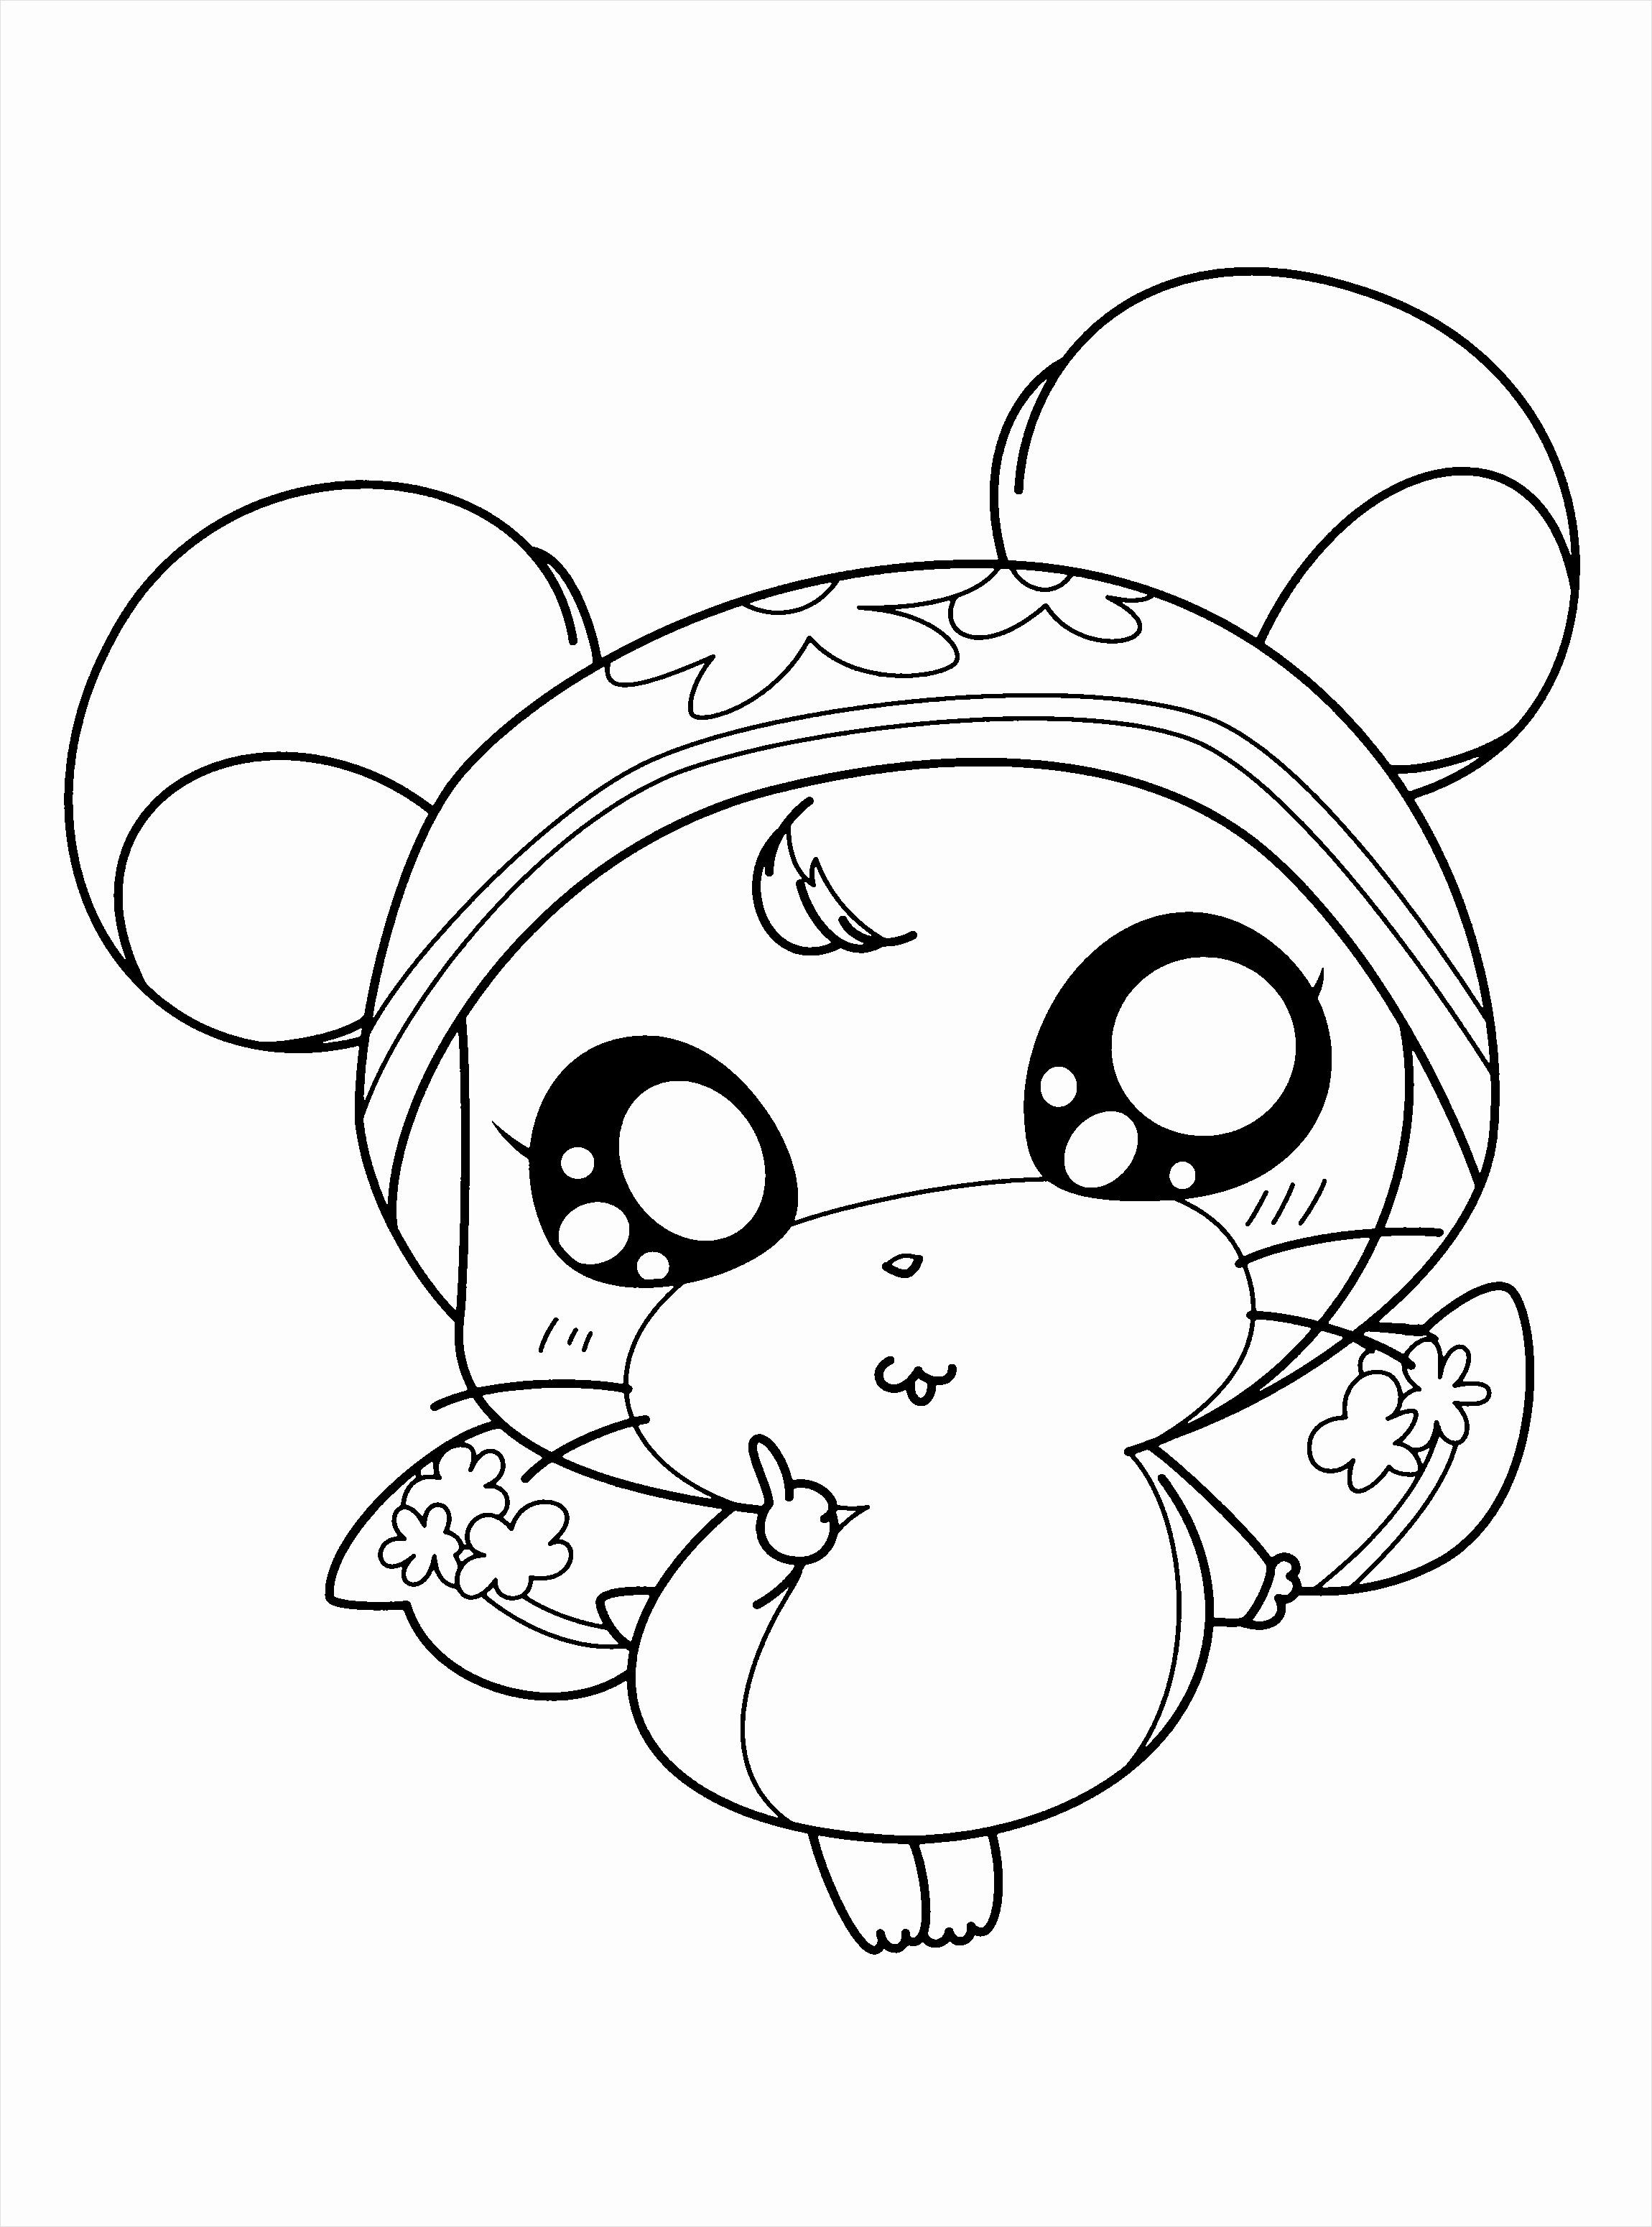 coloring pages that you can color online Collection-Cuties Coloring Pages Best Home Coloring Pages Best Color Sheet 0d – Modokom – Fun 18-h